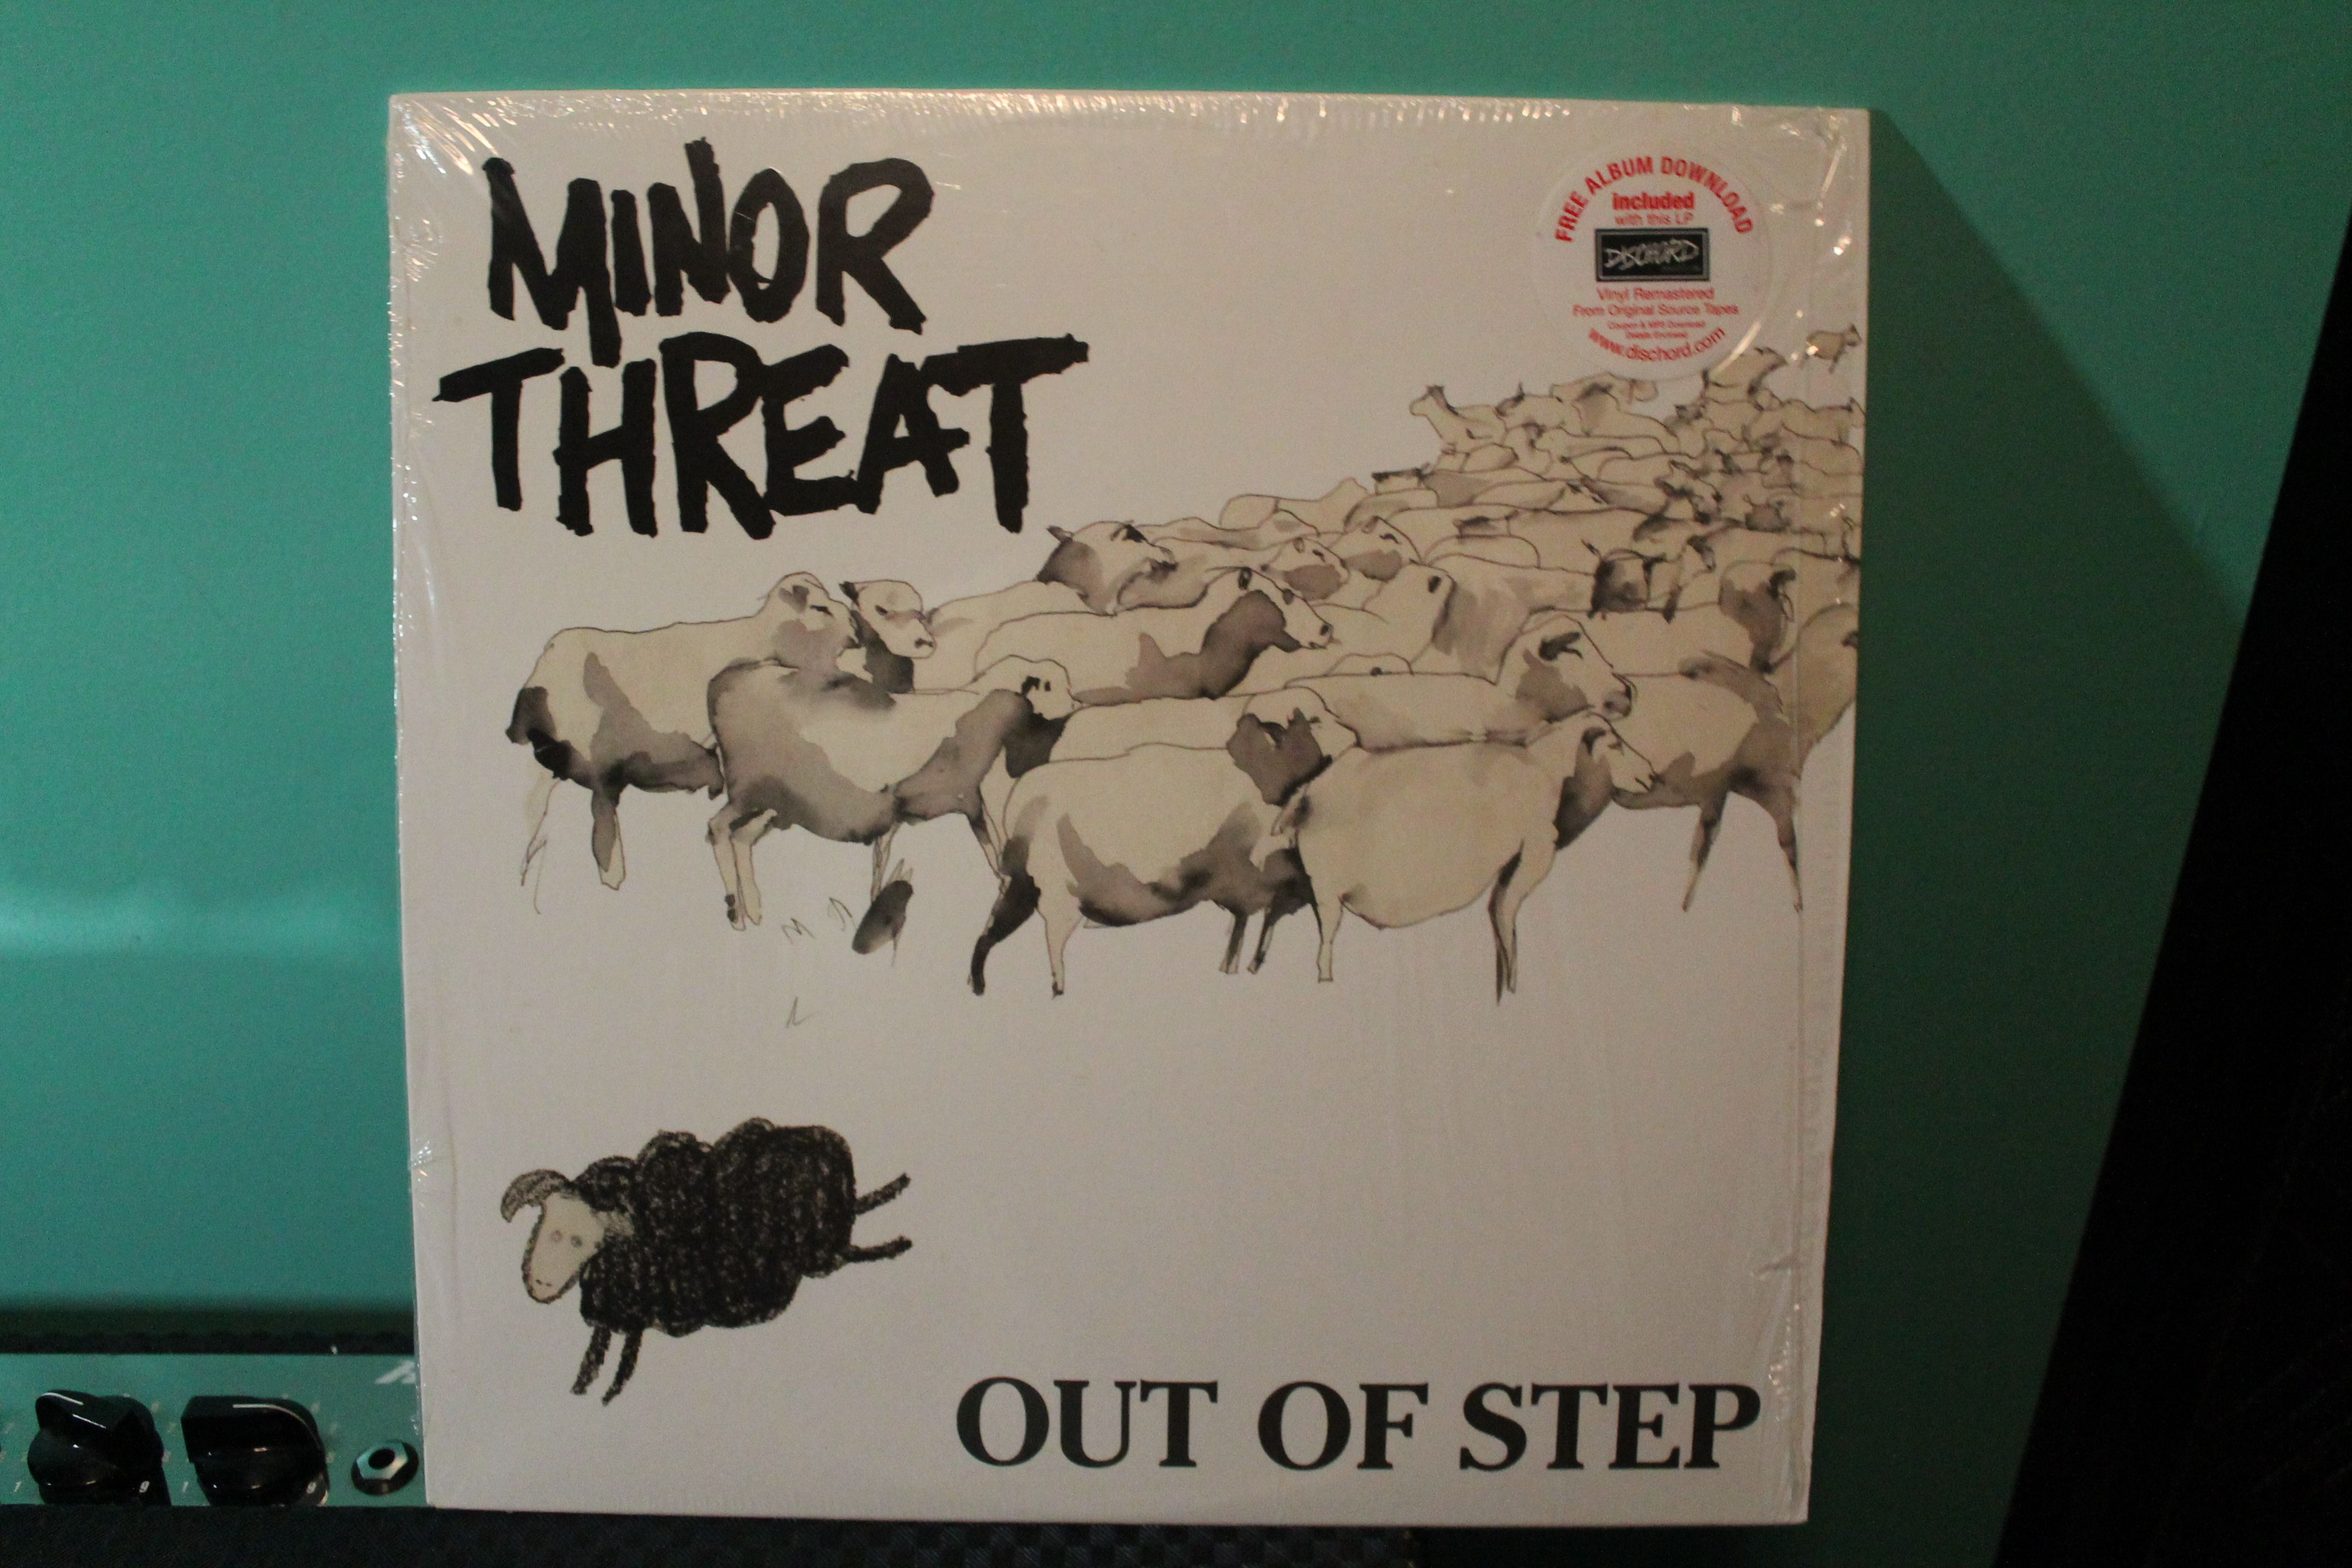 Out of Step, Essential Punk Minor threat, Step, Punk